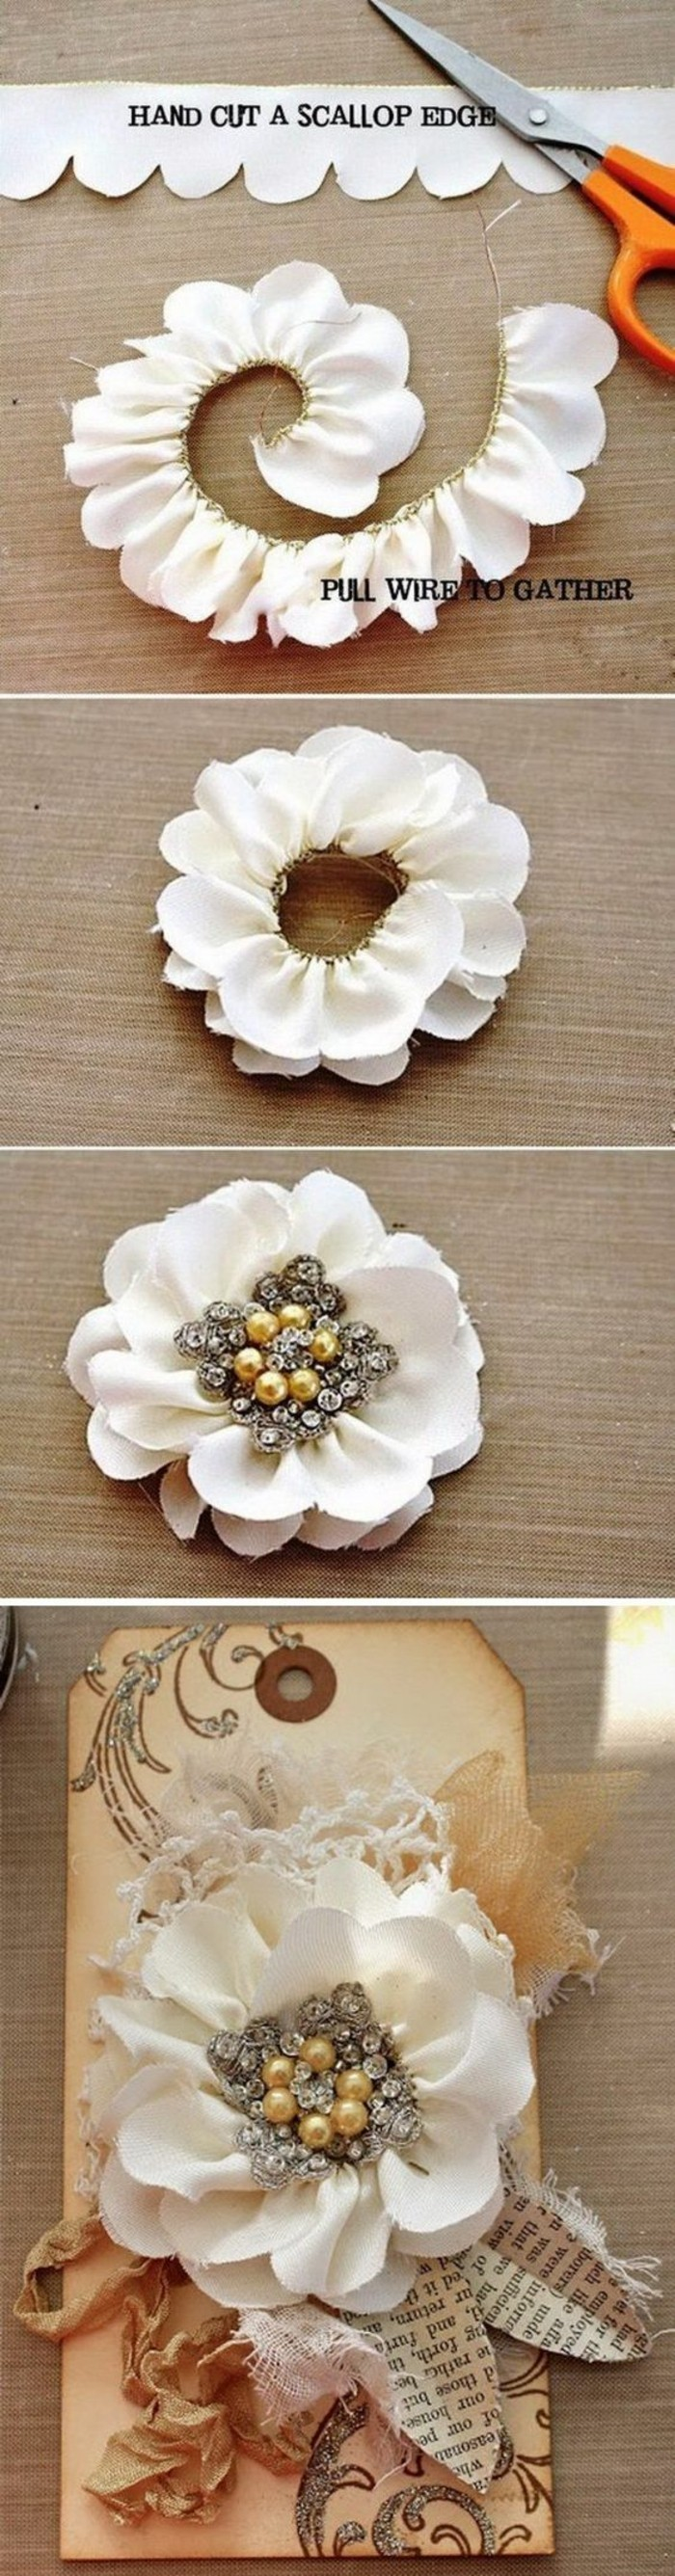 rose made of fabric, white fabric, creative birthday ideas for best friend, step by step, diy tutorial